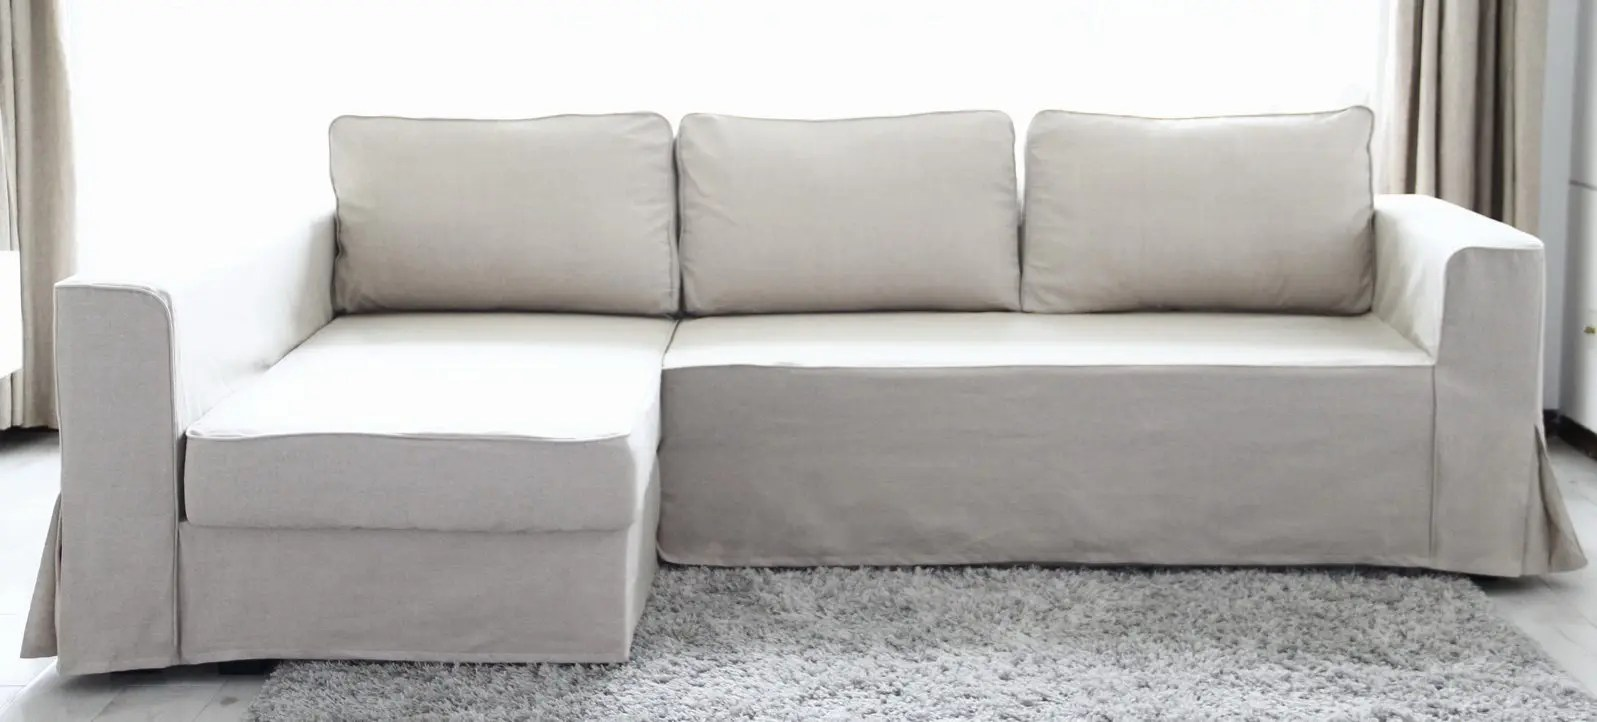 Ikea L Sofa Covers Loose Fit Linen Manstad Sofa Slipcovers Now Available